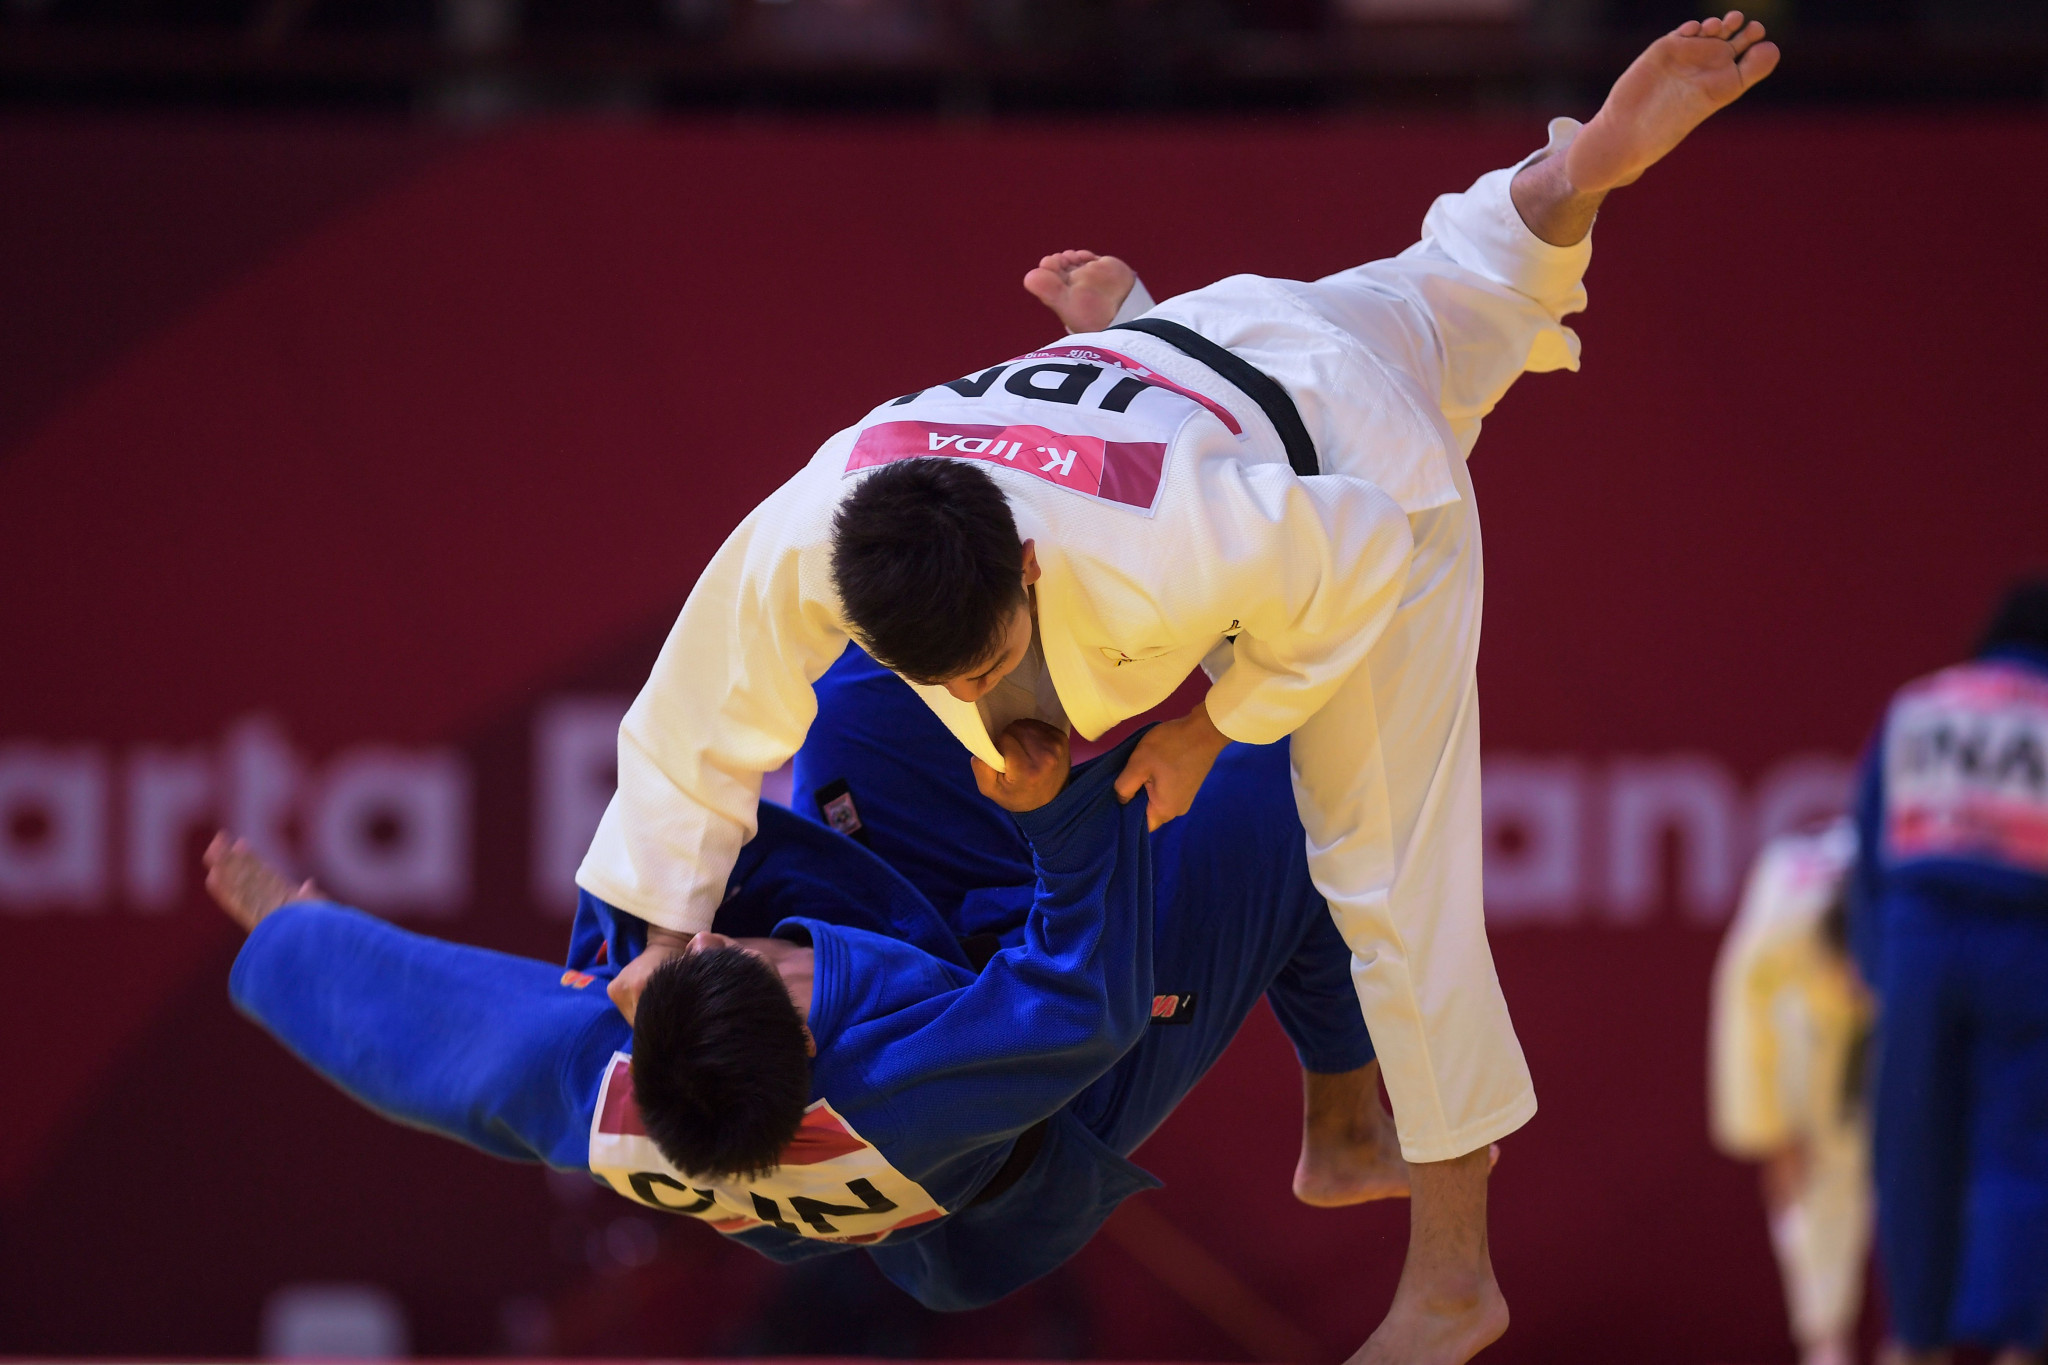 The partnership between the IJF and the ITA starts immediately and runs until Tokyo 2020 ©Getty Images